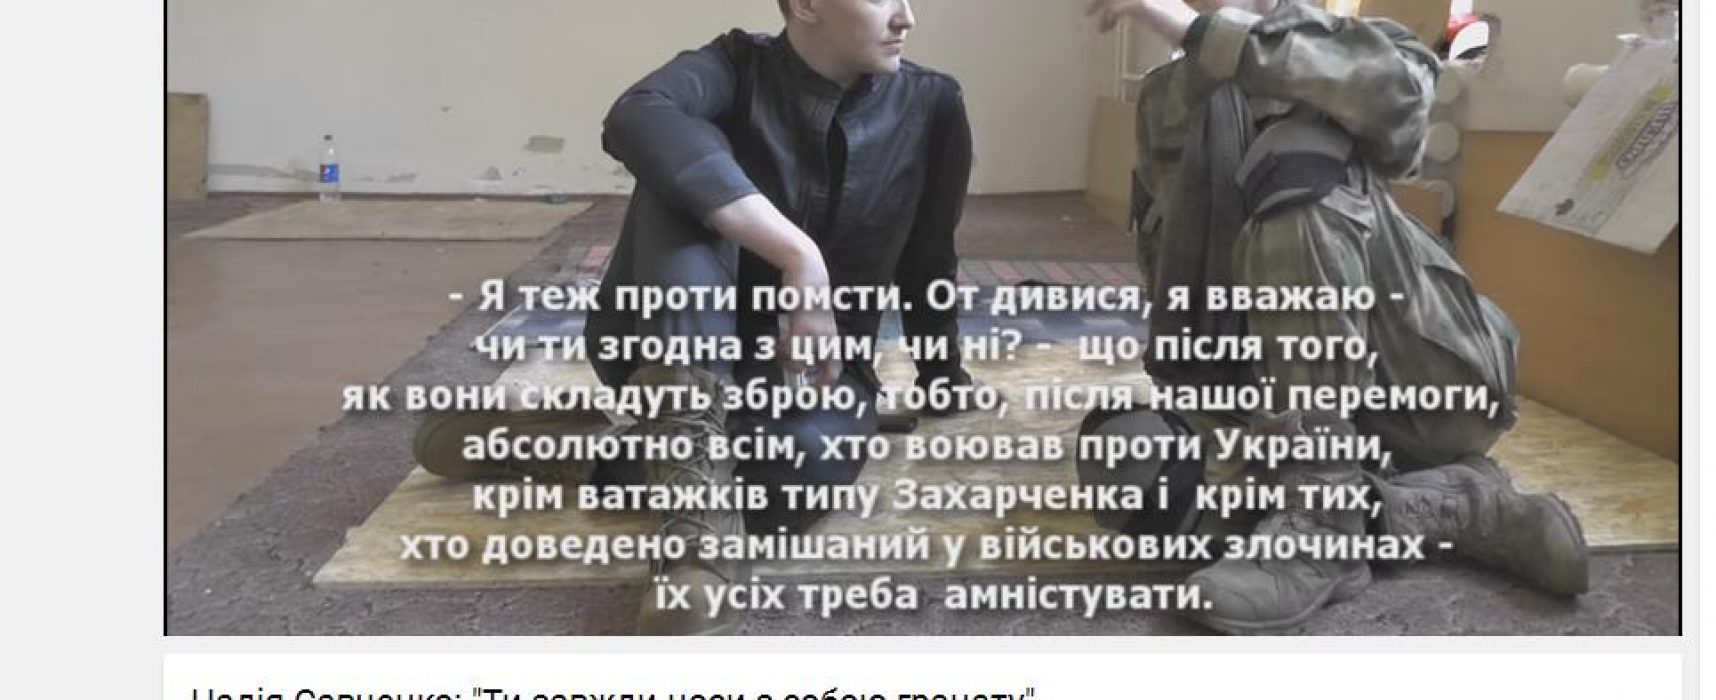 Fake: Nadiya Savchenko Advocates Amnesty for Donbas Separatists